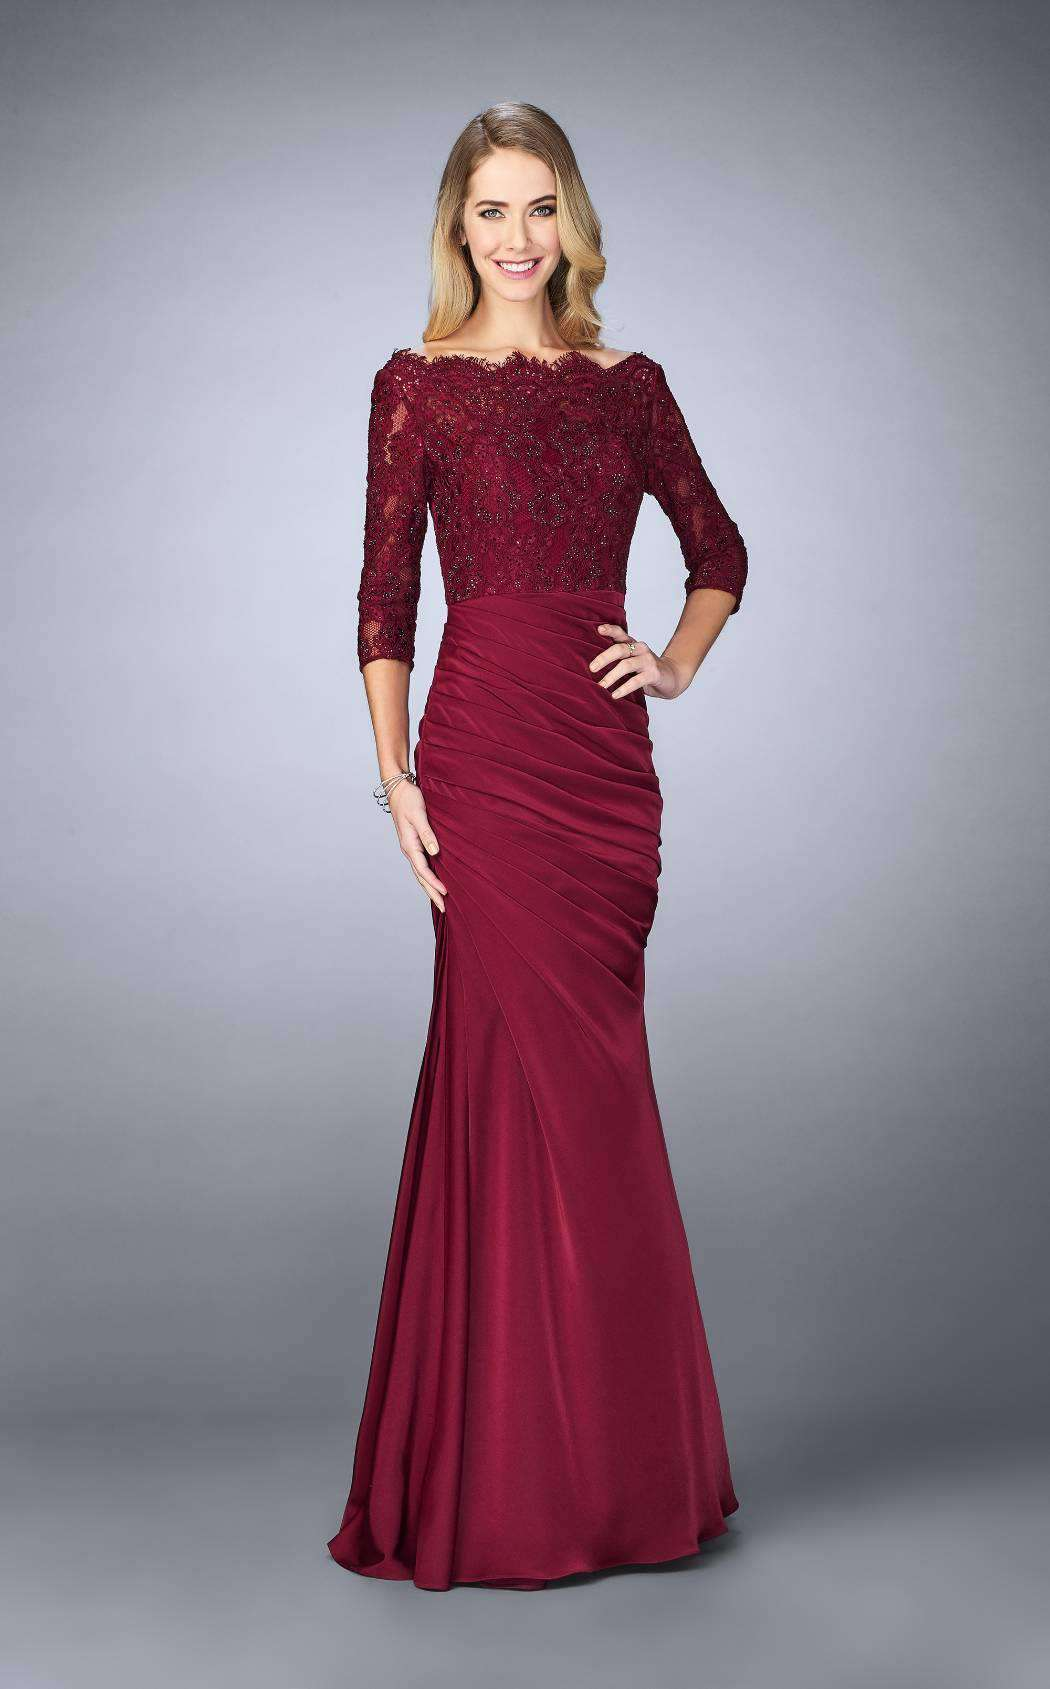 Ttybridal Off The Shoulder Velvet Evening Gown Long Prom Party Dresses With Two Sleeves V4 Dresses Women